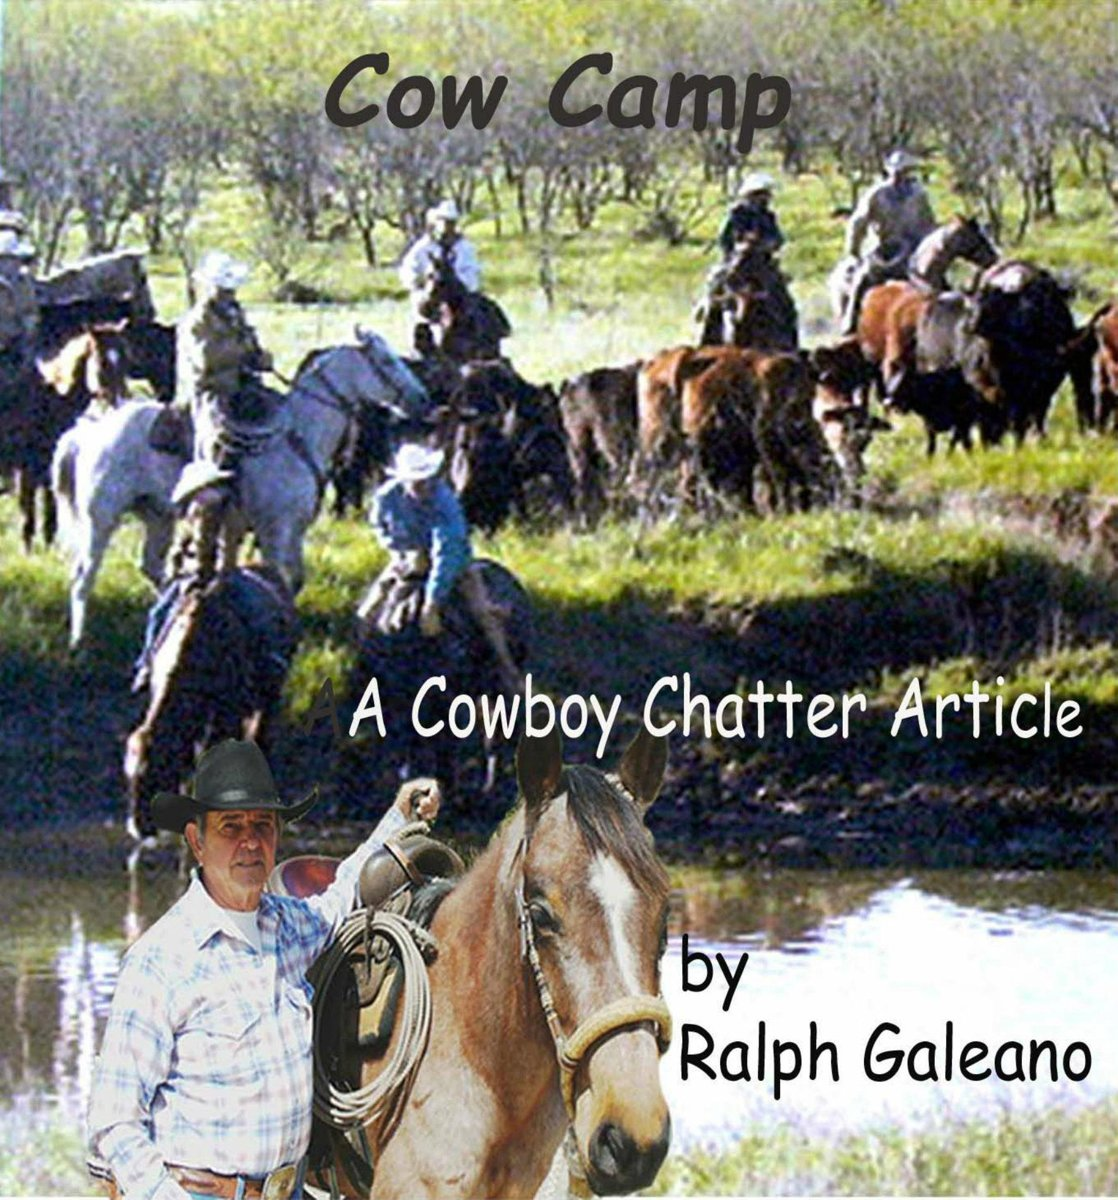 Cowboy Chatter article: Cow Camp